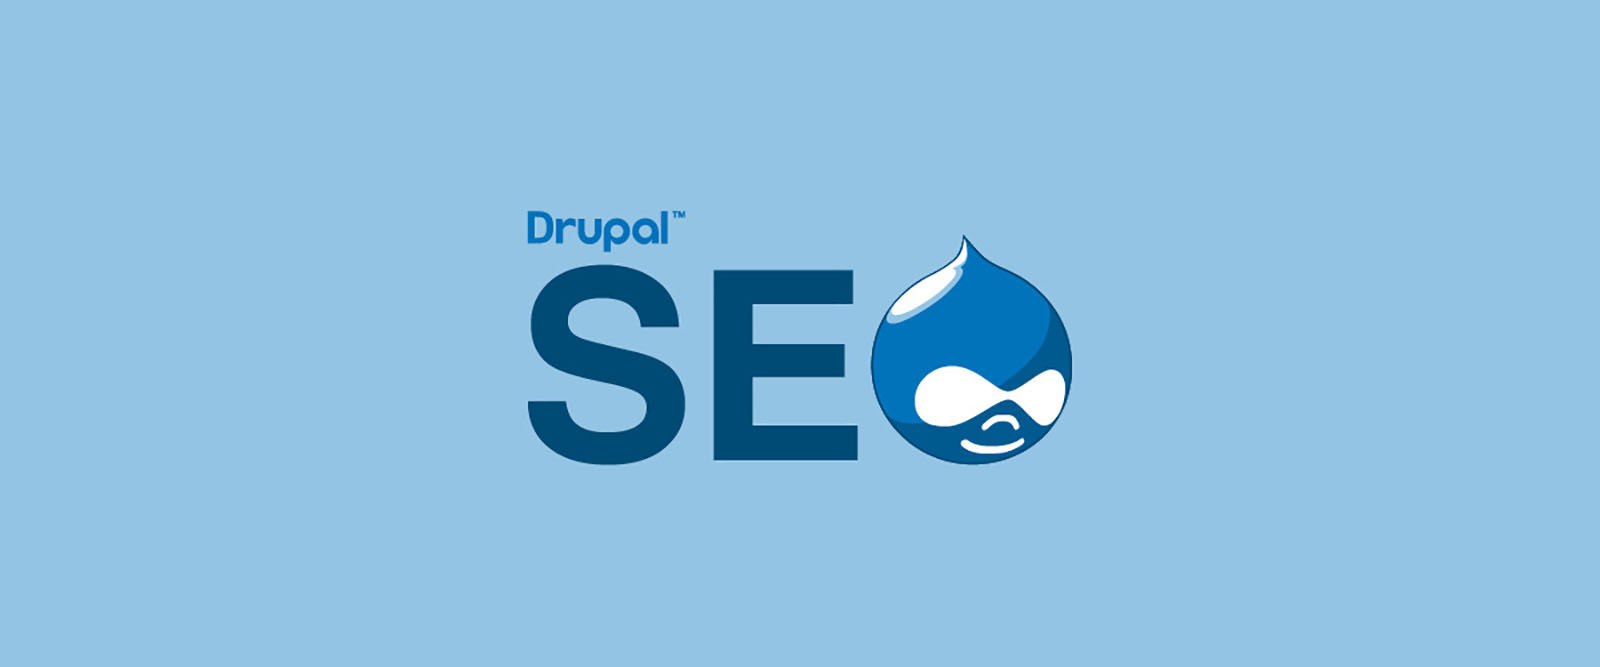 Drupal SEO - the Drupal logo and the word 'SEO' with the 'O' replaced by the Drupal icon (druplicon).